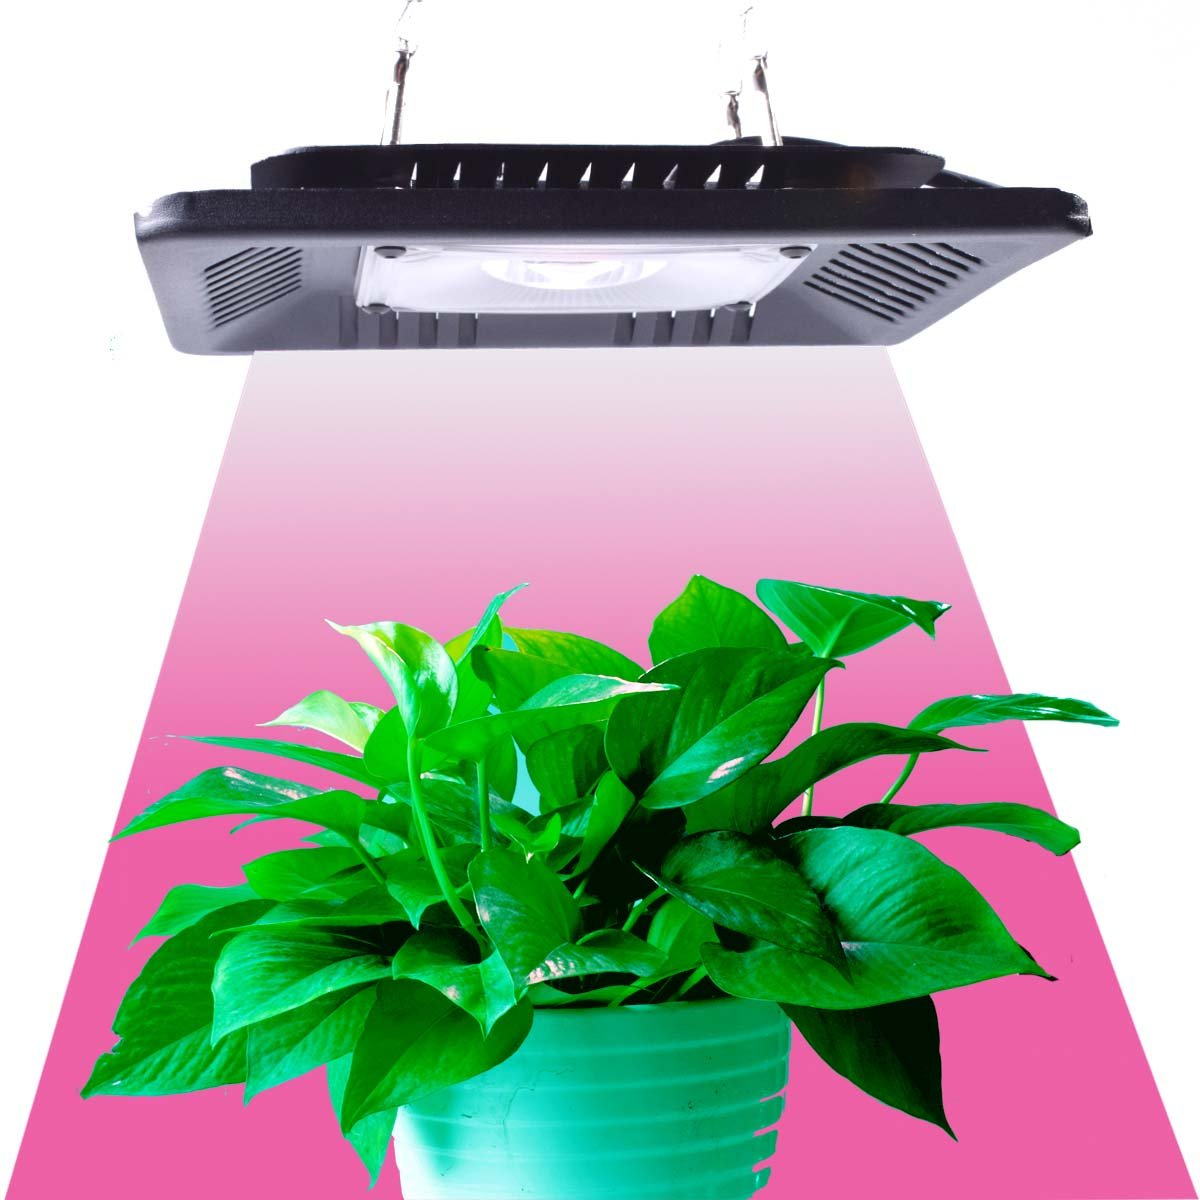 100W LED Grow Light,Full Spectrum COB Grow Lights for Plant Veg and Flowering Replace Hps (T-100W)